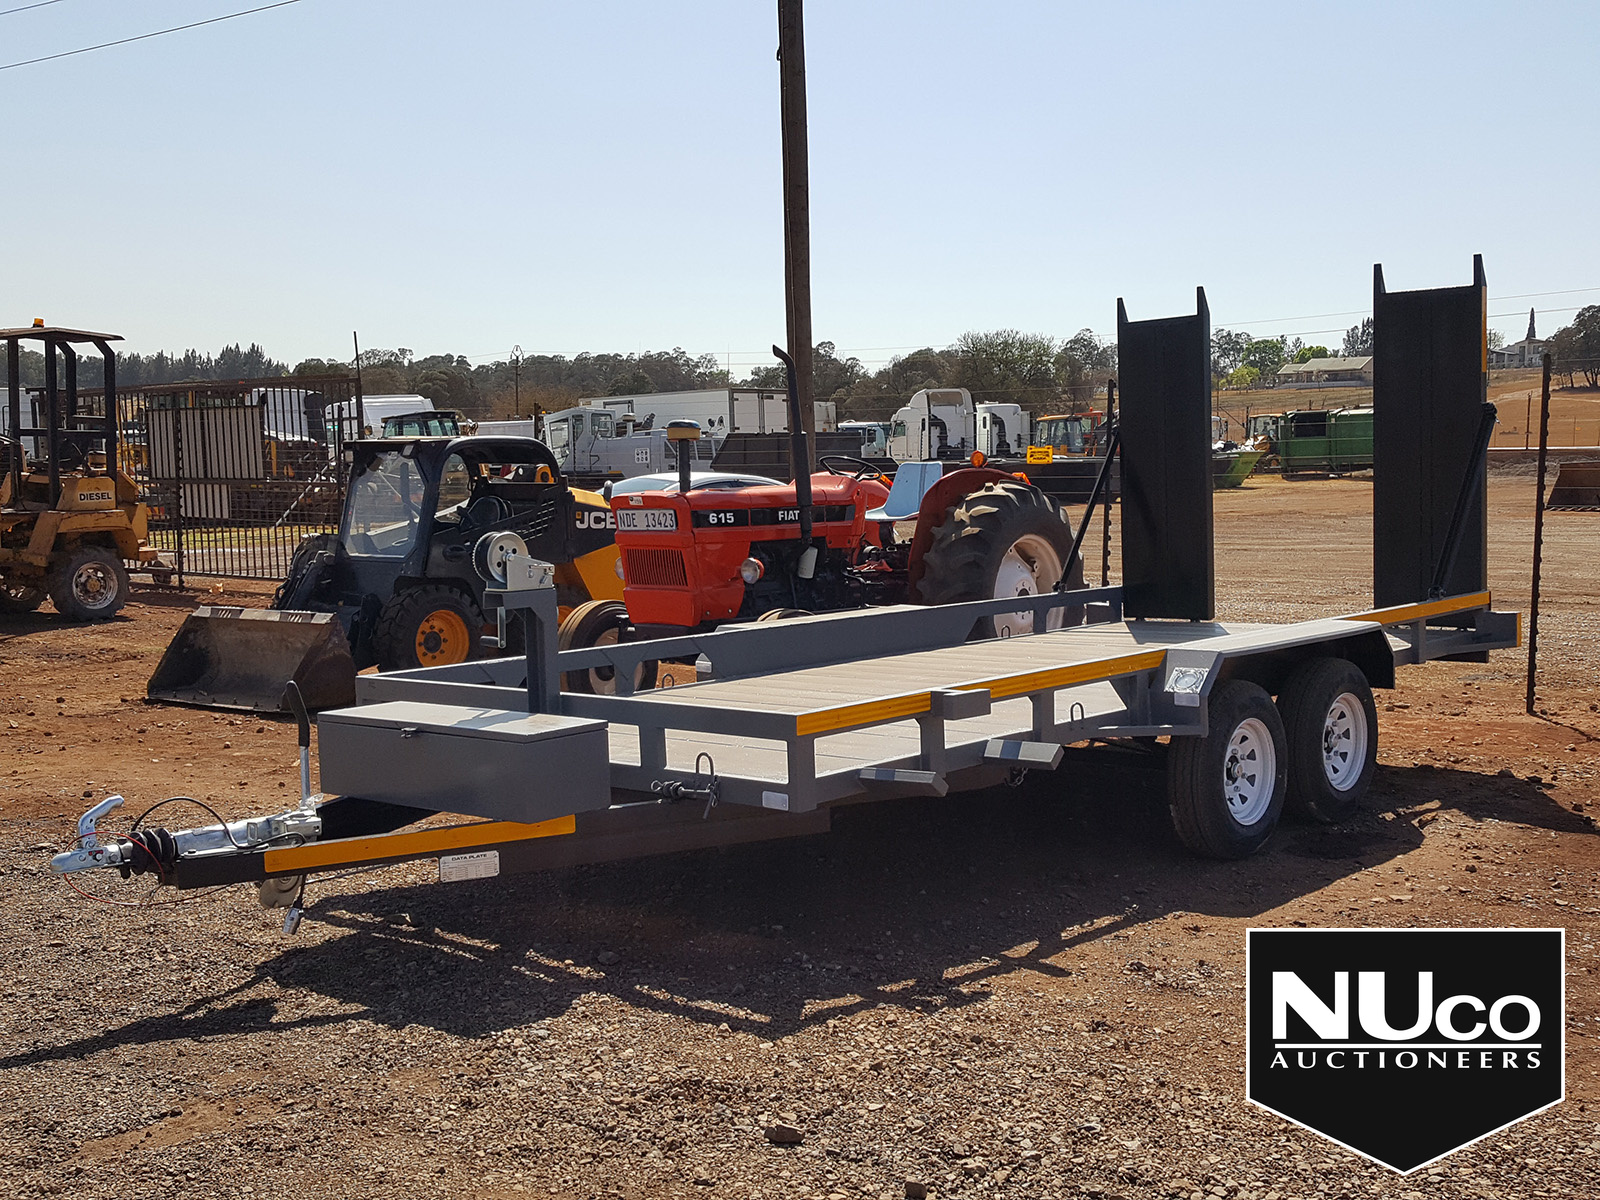 DOUBLE AXLE CAR CARRIER TRAILER WITH RAMPS | Nuco Auctioneers